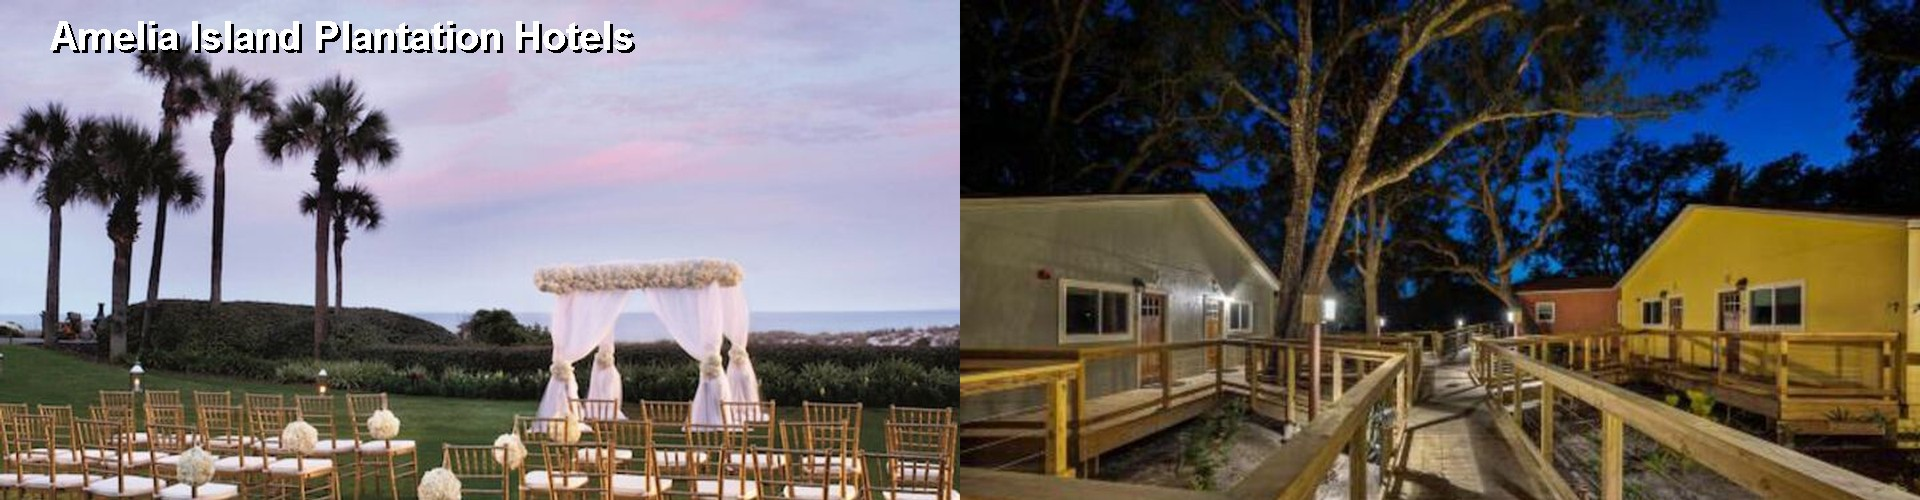 5 Best Hotels near Amelia Island Plantation